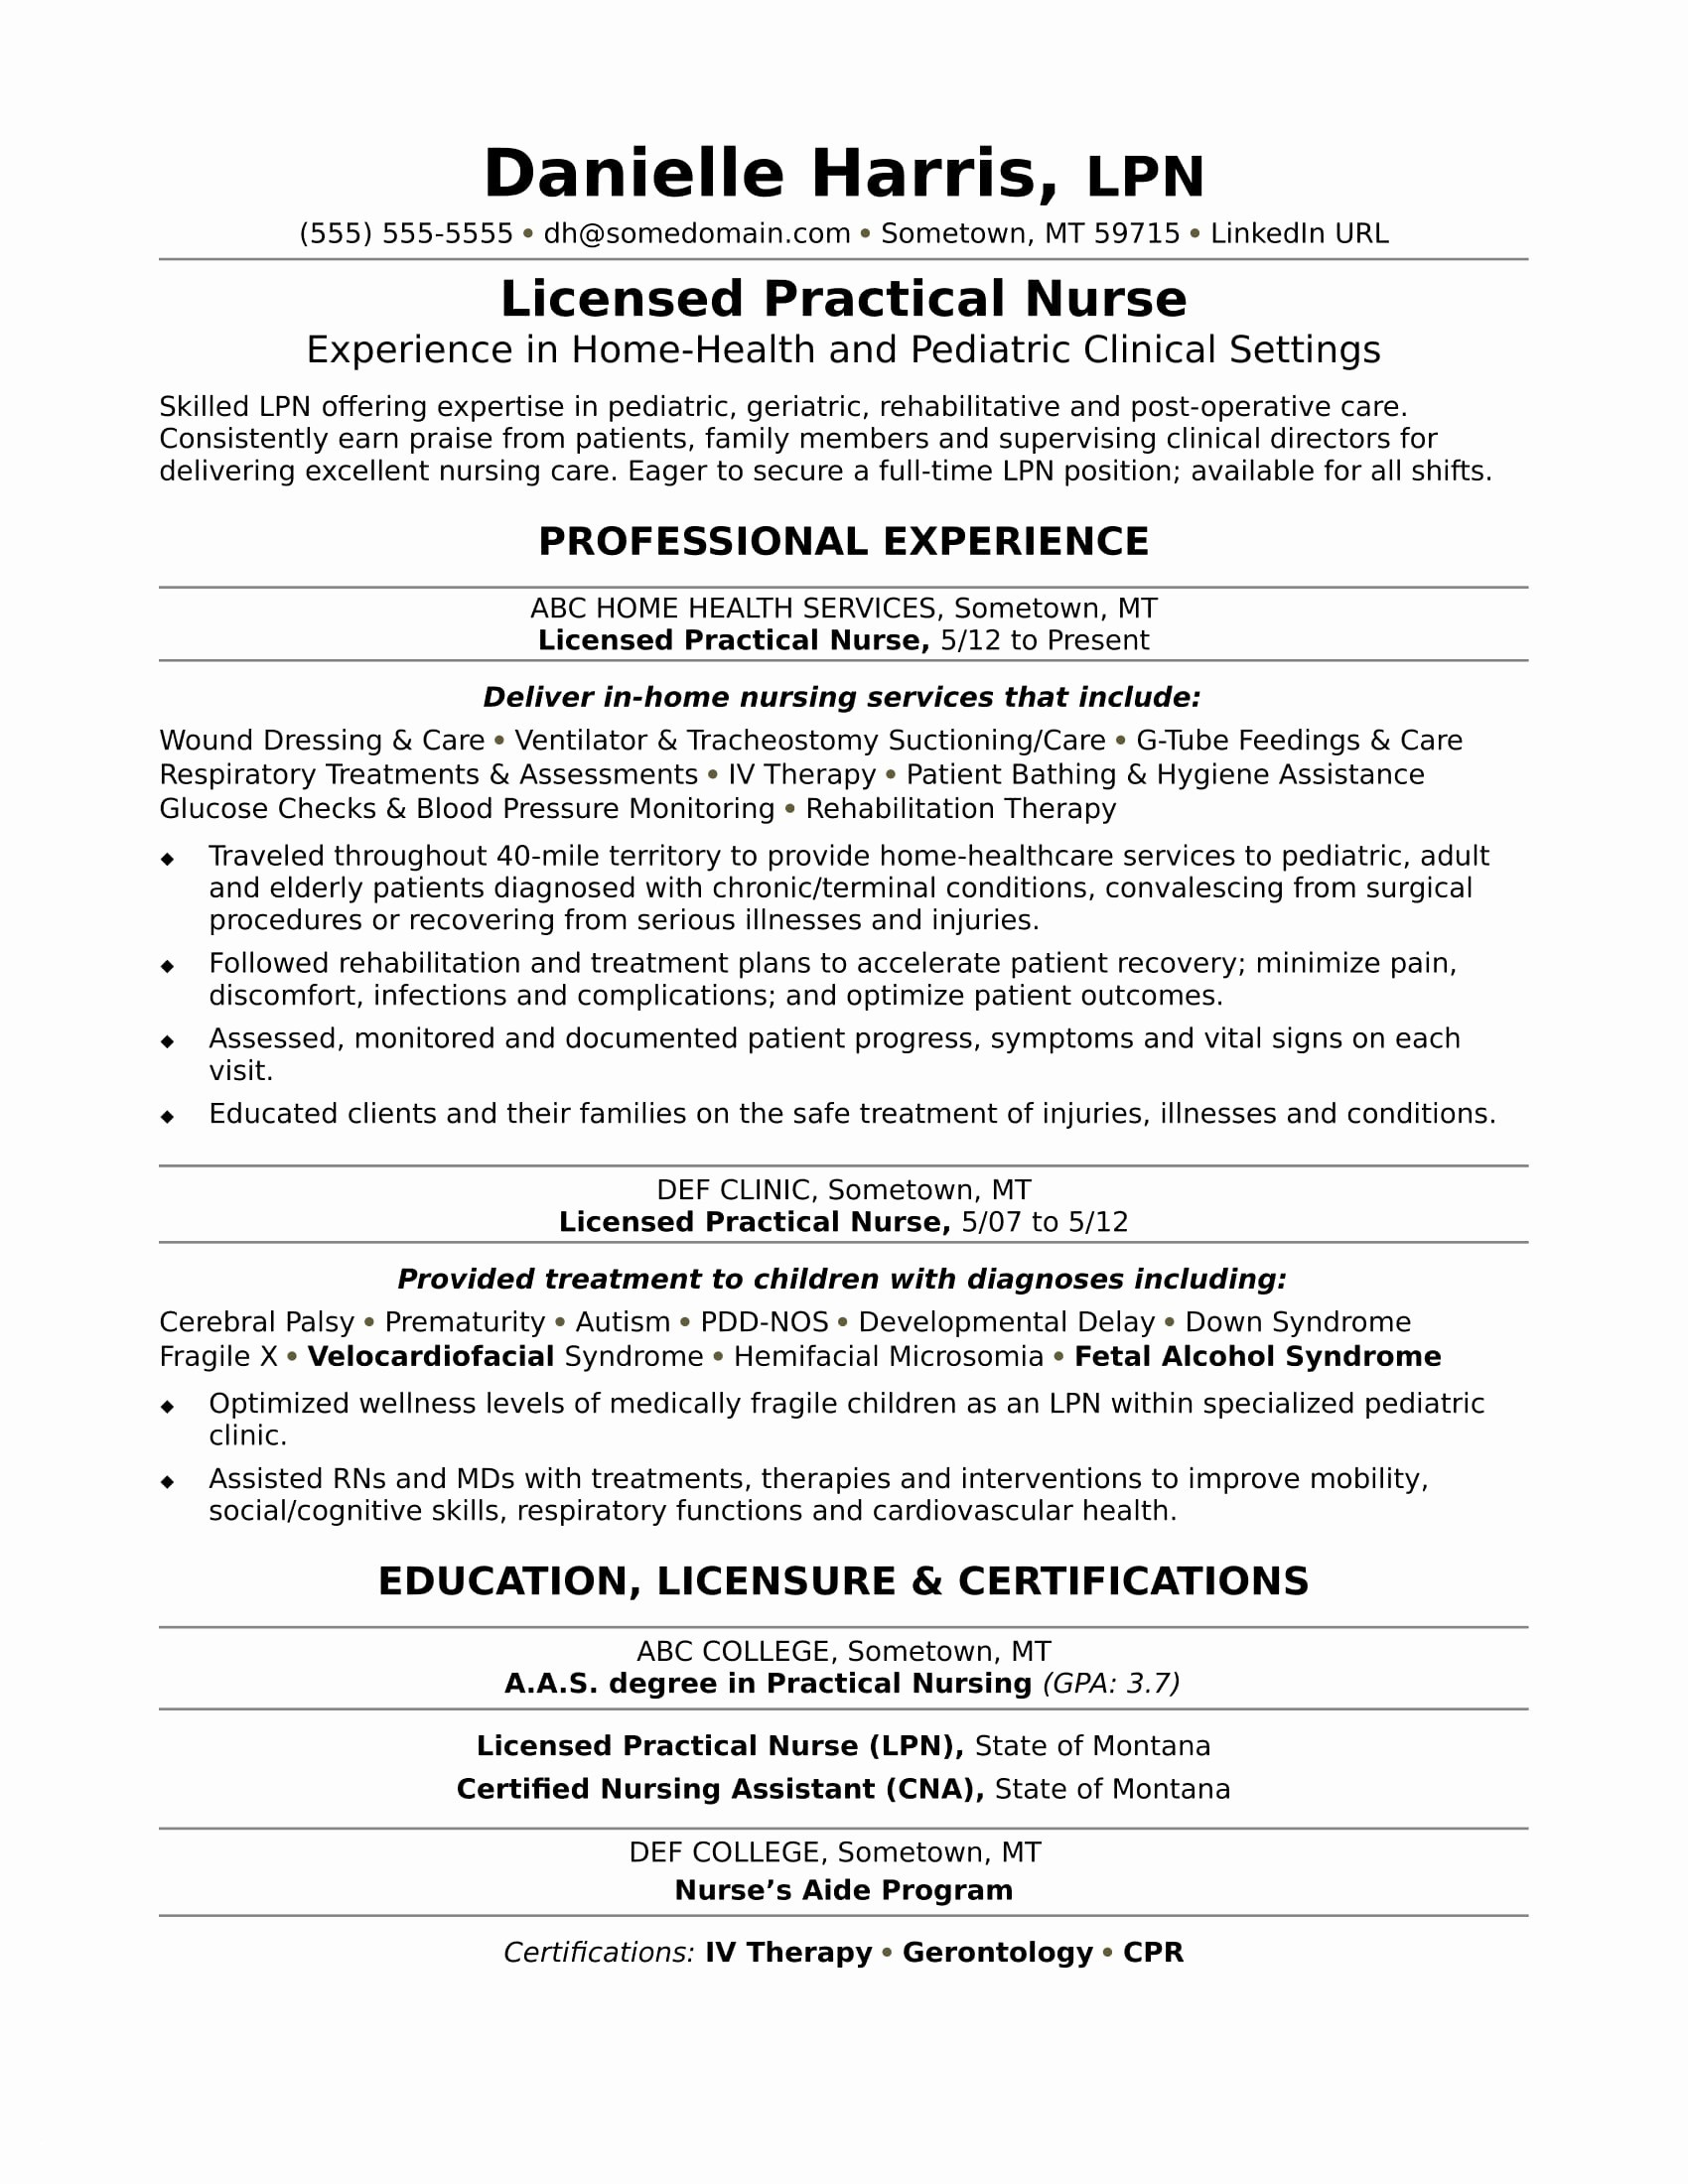 Resume Template Nursing Student - Resume for Nursing Student Luxury Resume for Nurse Luxury New Nurse